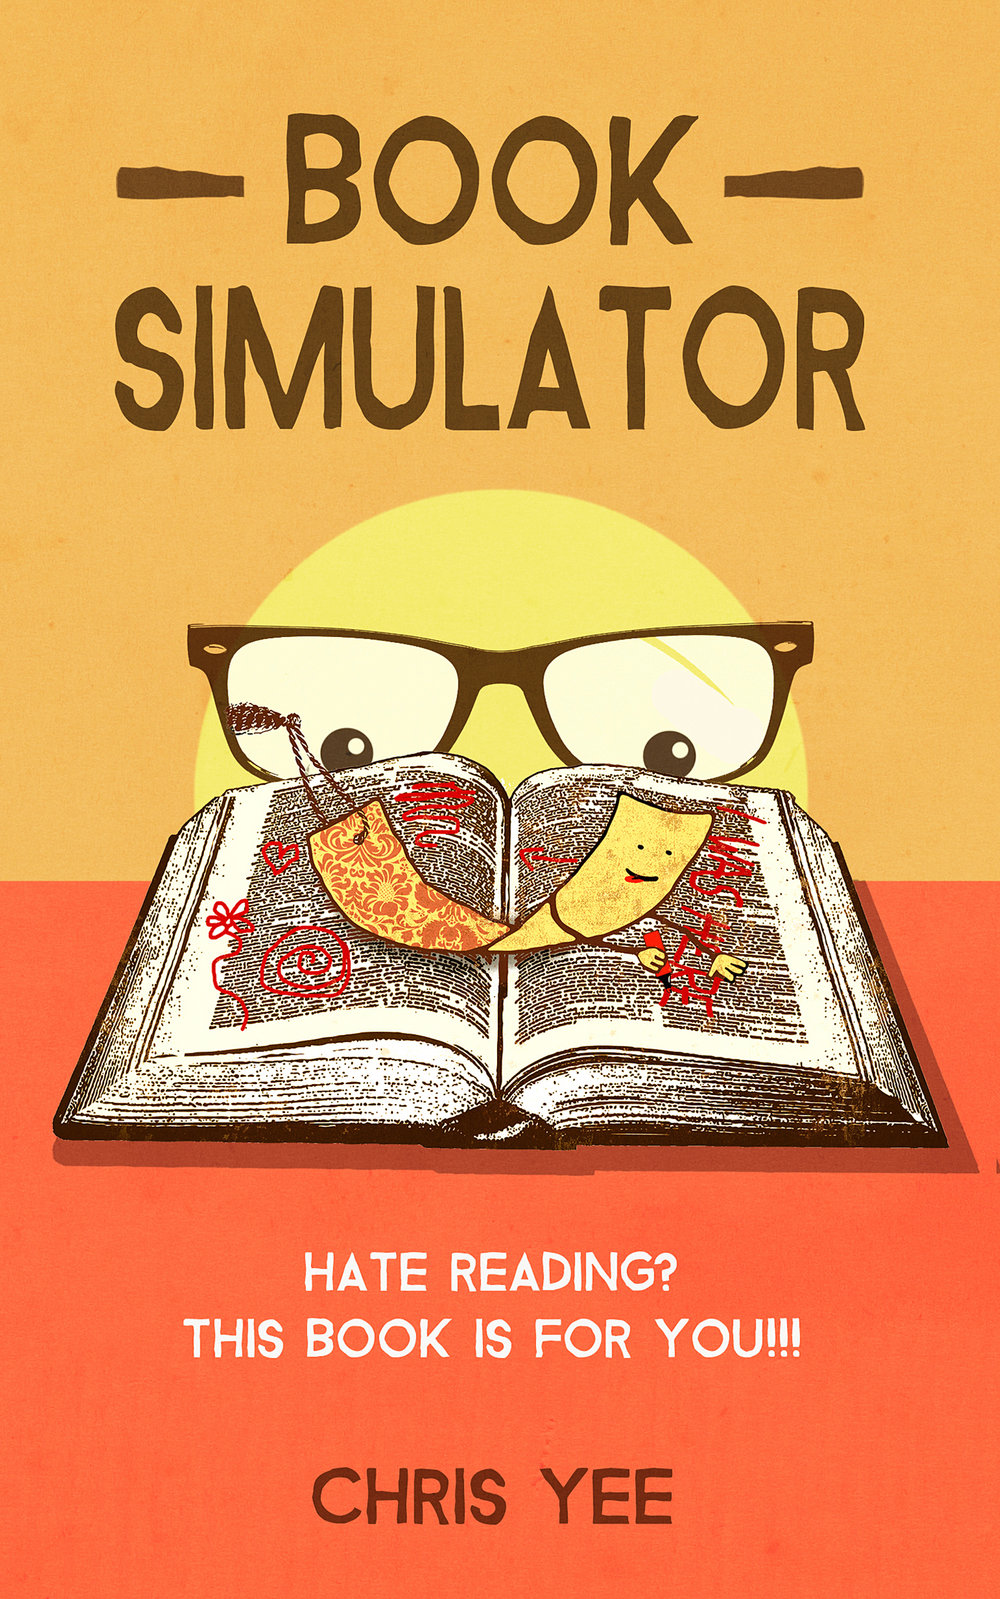 Book Simulator front.jpg